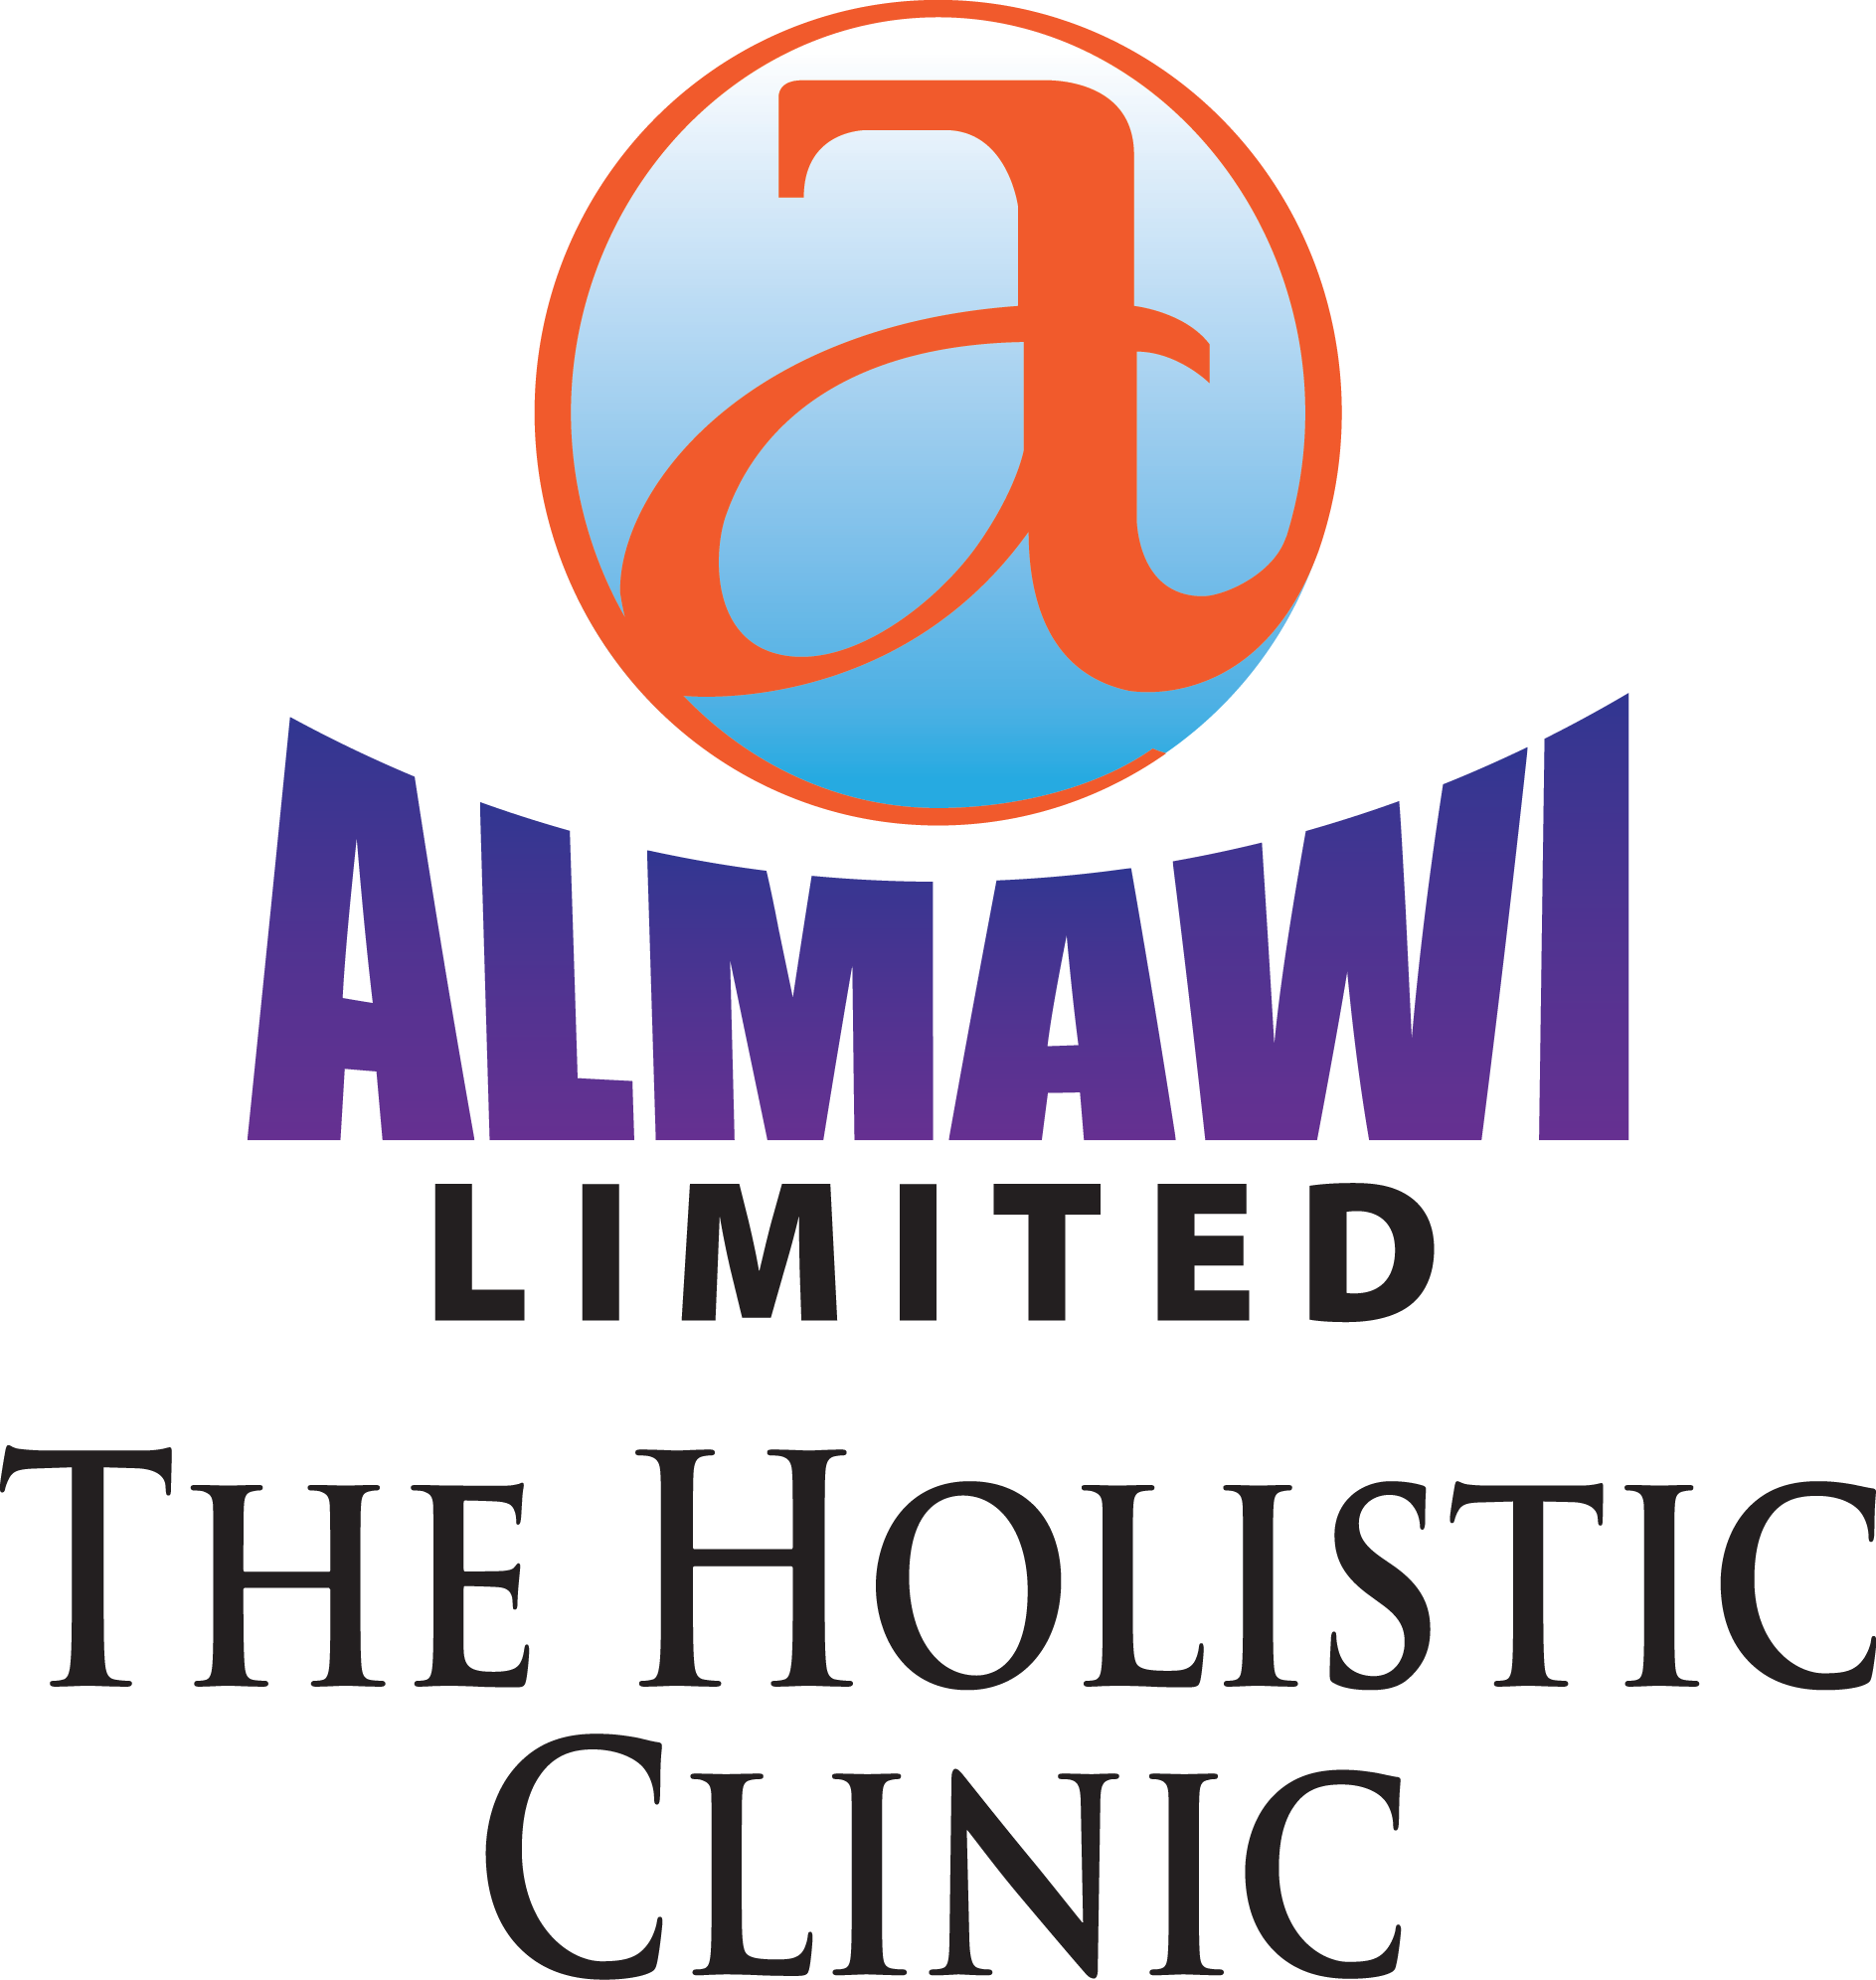 Almawi Limited The Holistic Clinic